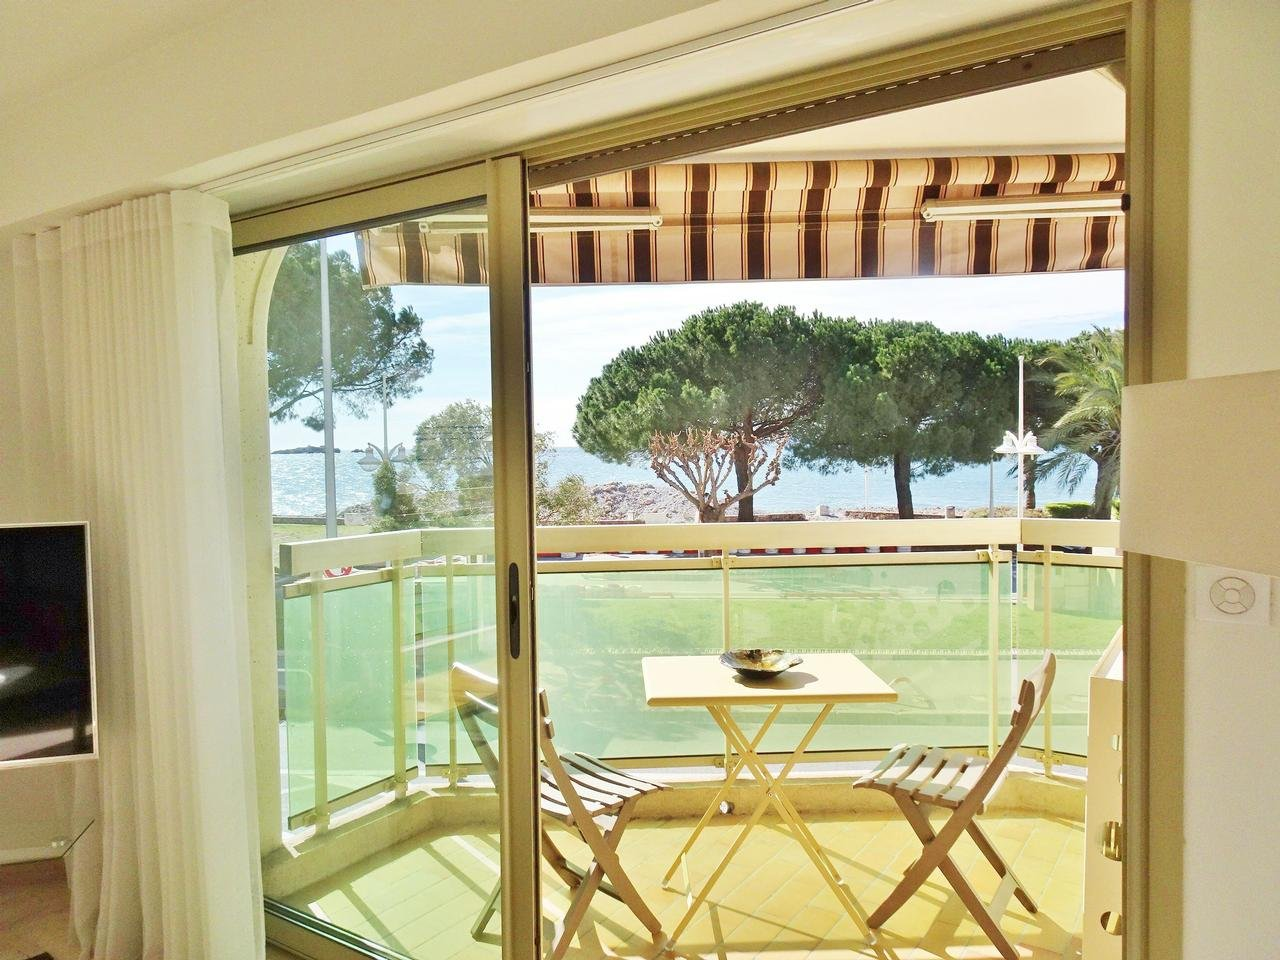 Appartement  3 Rooms 88.6m2  for sale   719000 €